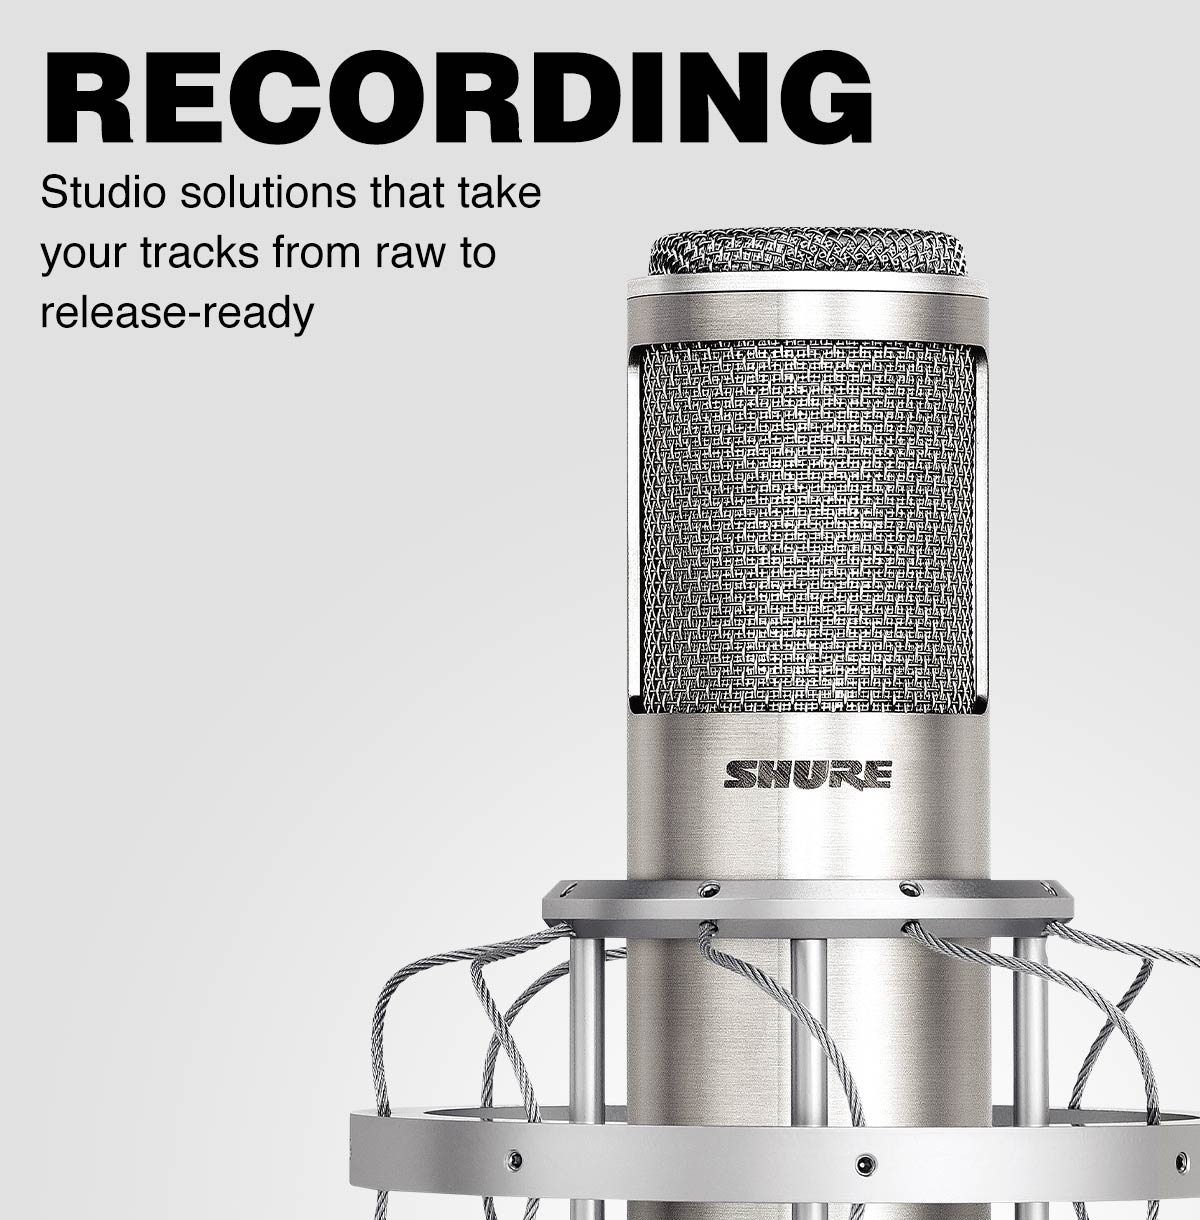 Recording. Take your tracks from raw to release-ready with studio solutions that allow you to turn your vision into reality